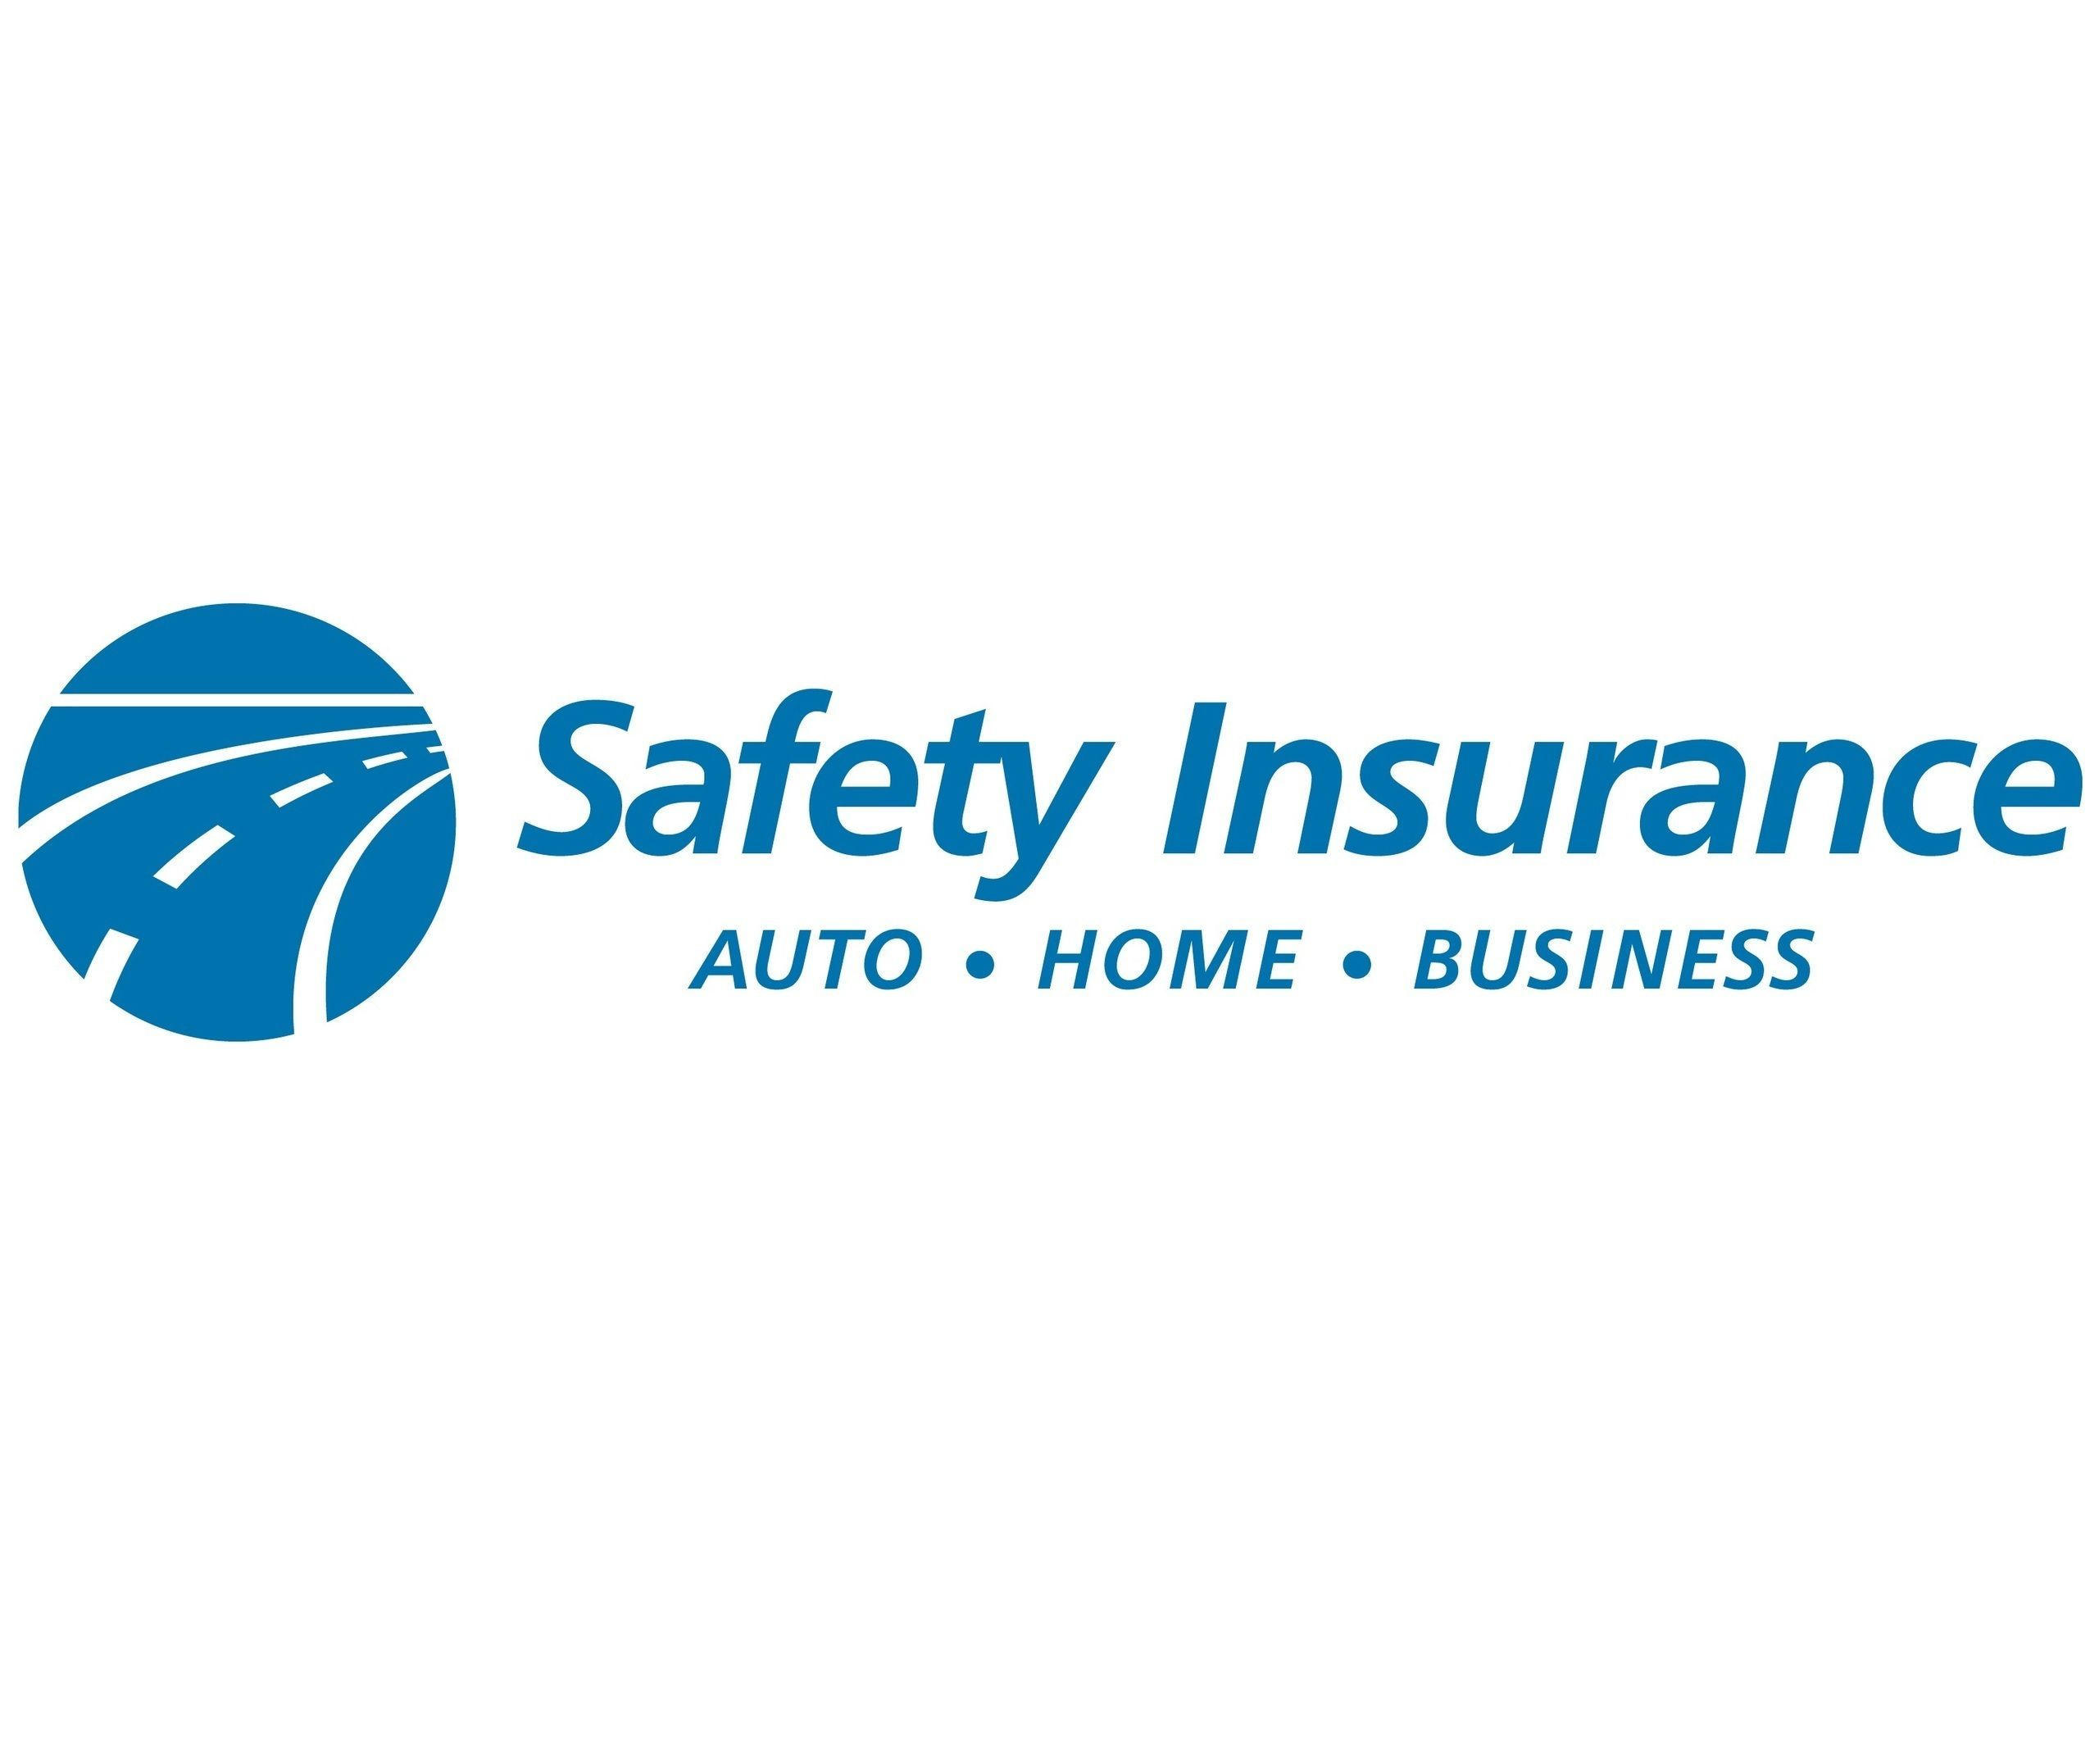 Safety Insurance Insurance For Home Auto Business Auto